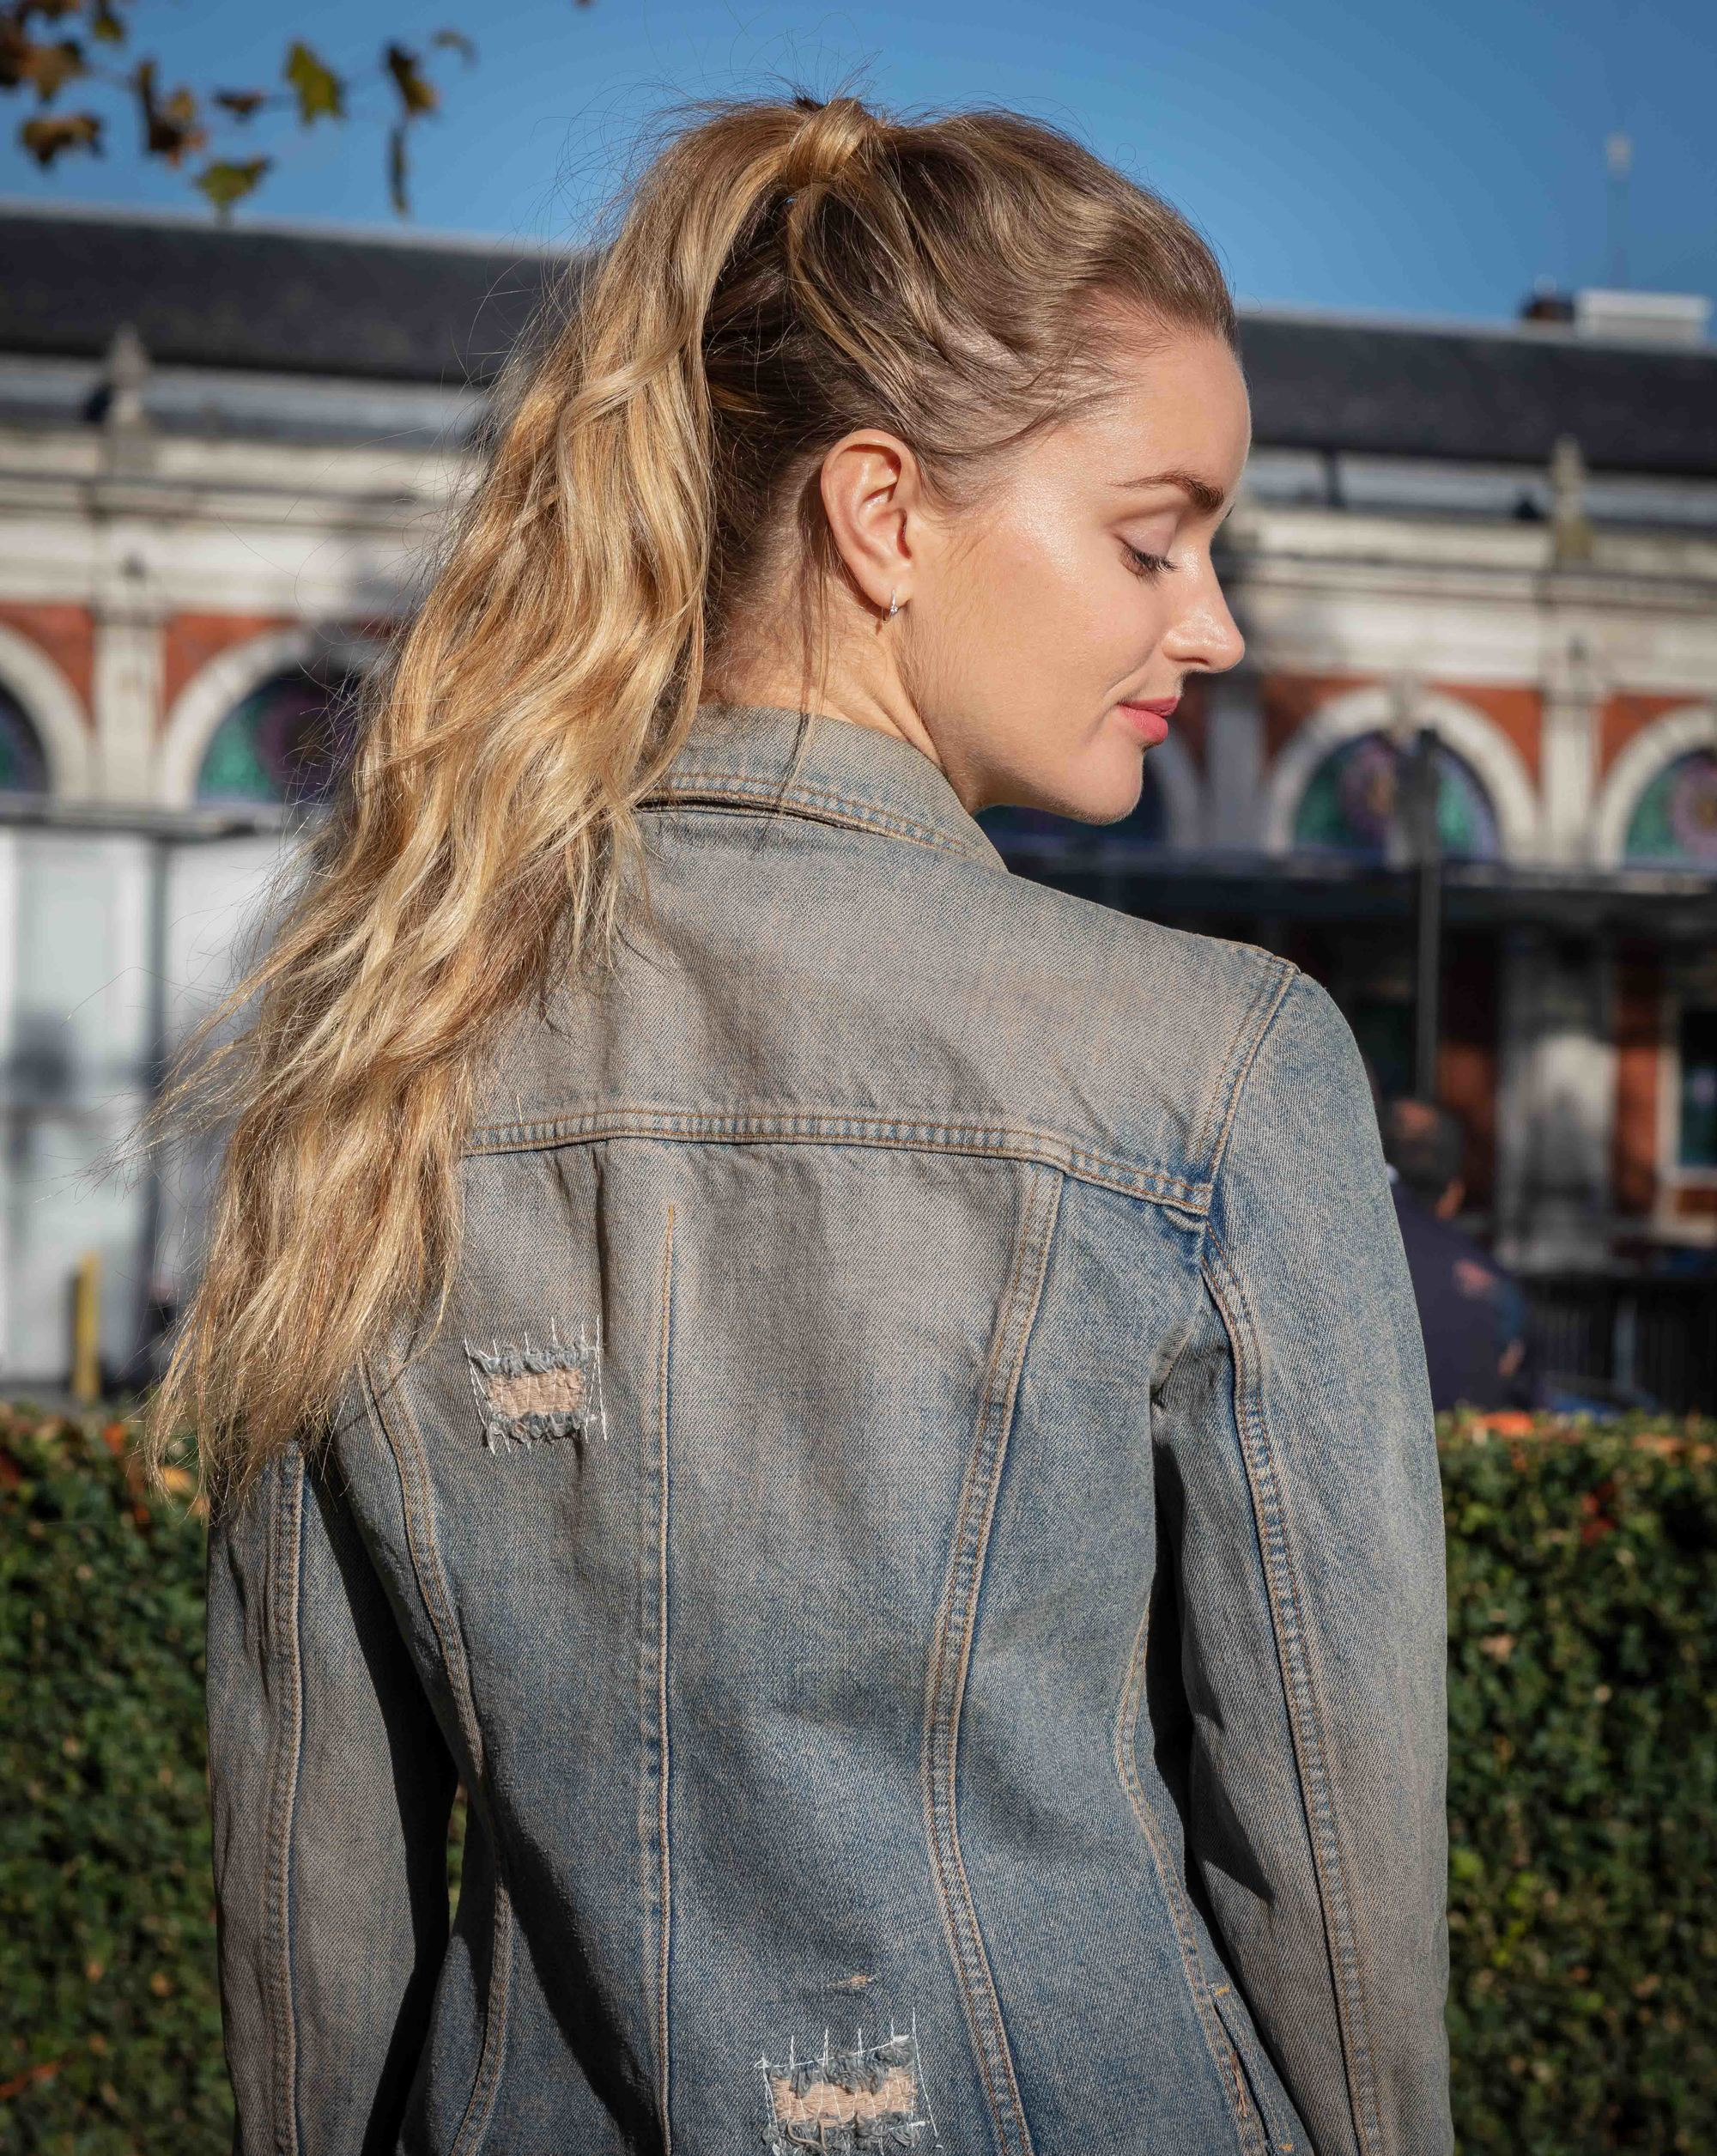 How to style long hair: Outdoor profile shot of a blonde model with long wavy hair in a high double ponytail, wearing a denim jacket